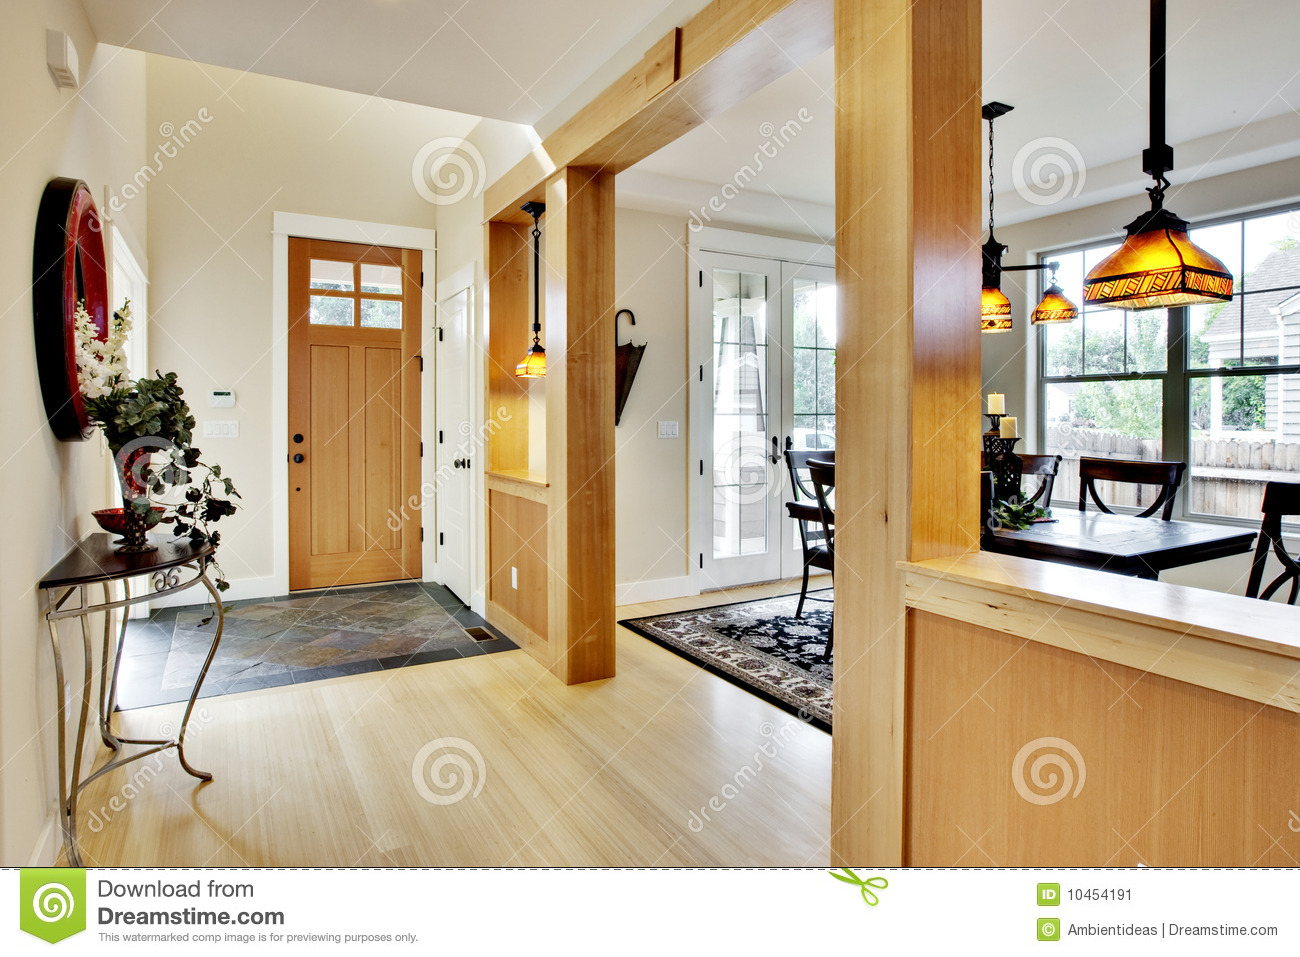 Home entrance hallway stock image image of residential for Deco interieur maison americaine